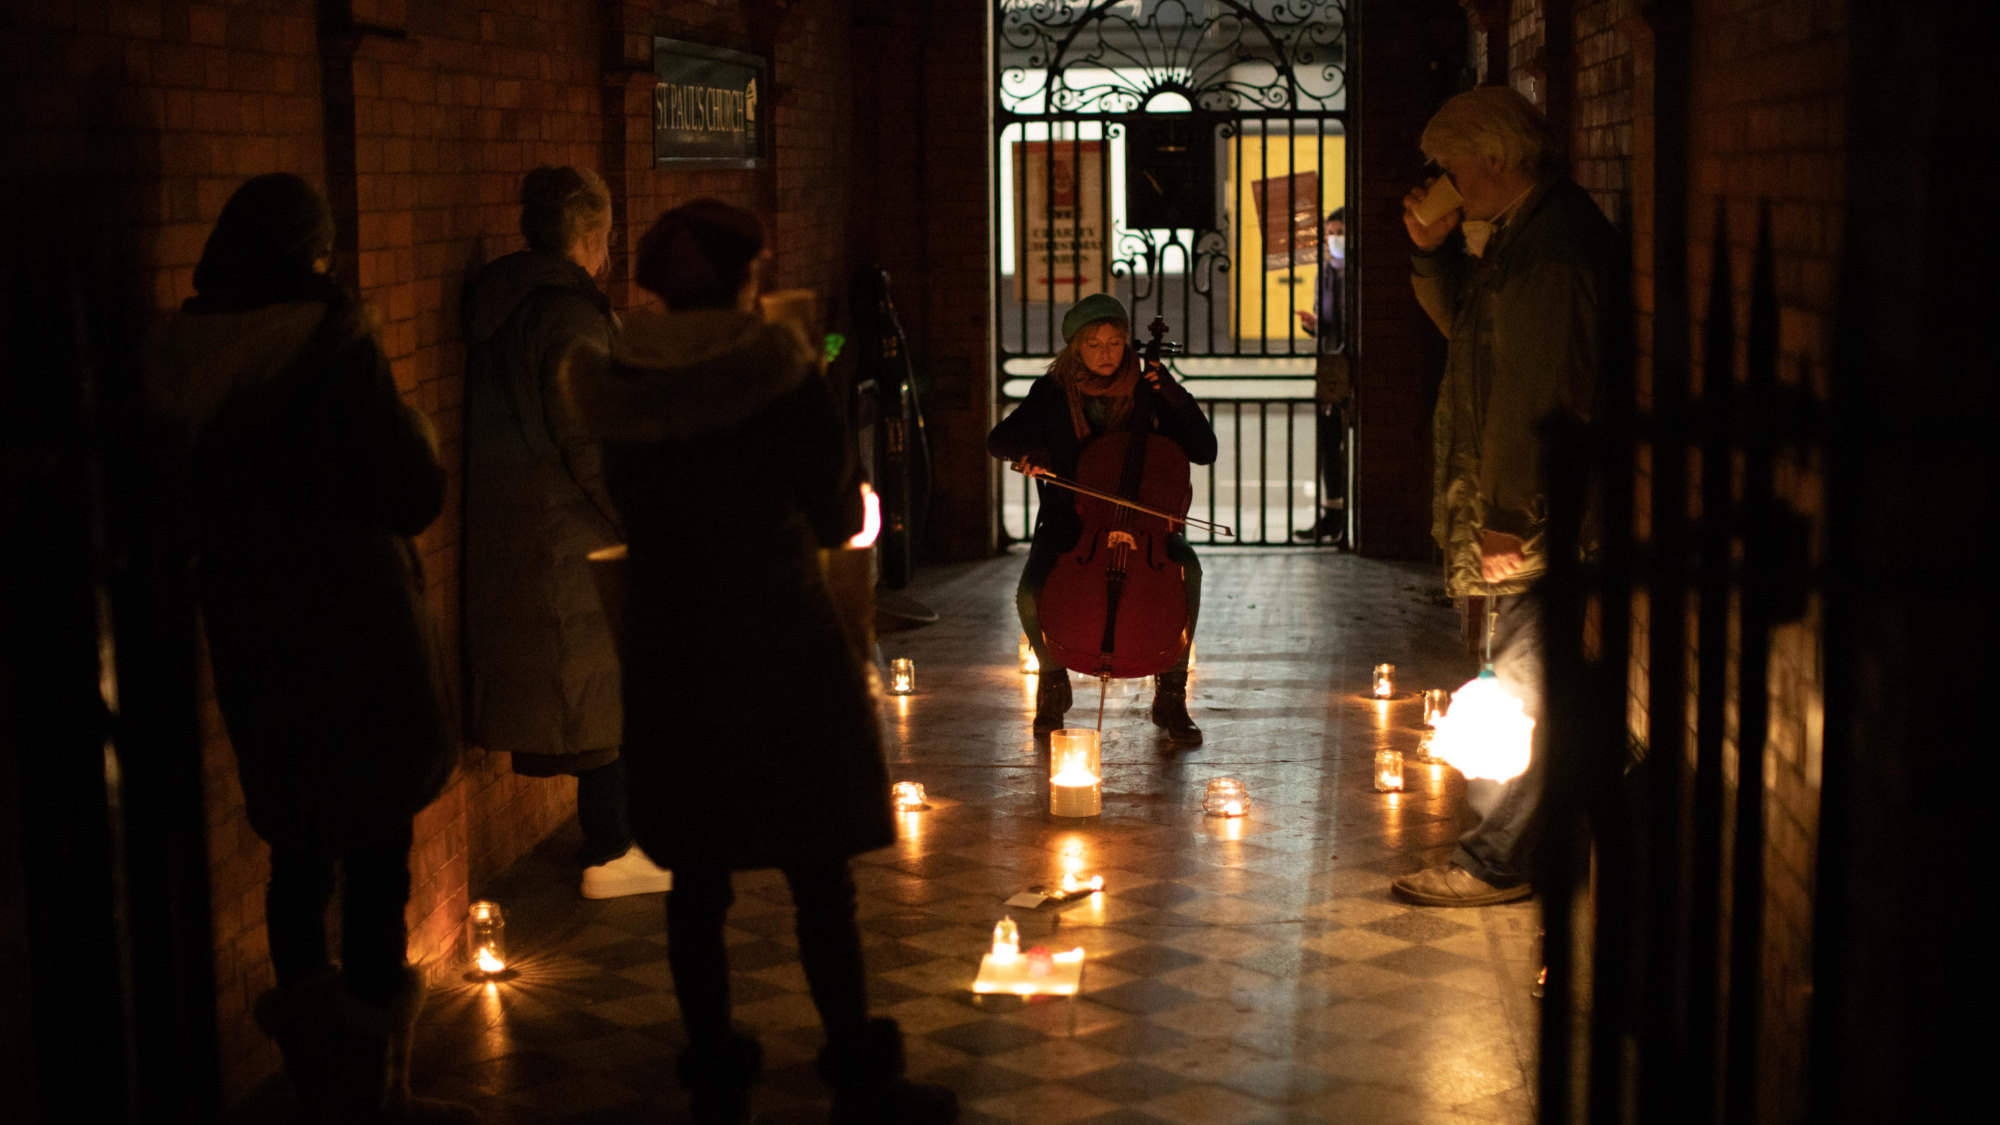 In a dark alley with red brick walls and a black and white tiled floor. A young woman sits wrapped up in wither clothes playing a cello. She is surrounded by candles in glass jars. A small socially distanced audience watch her sipping warm drinks